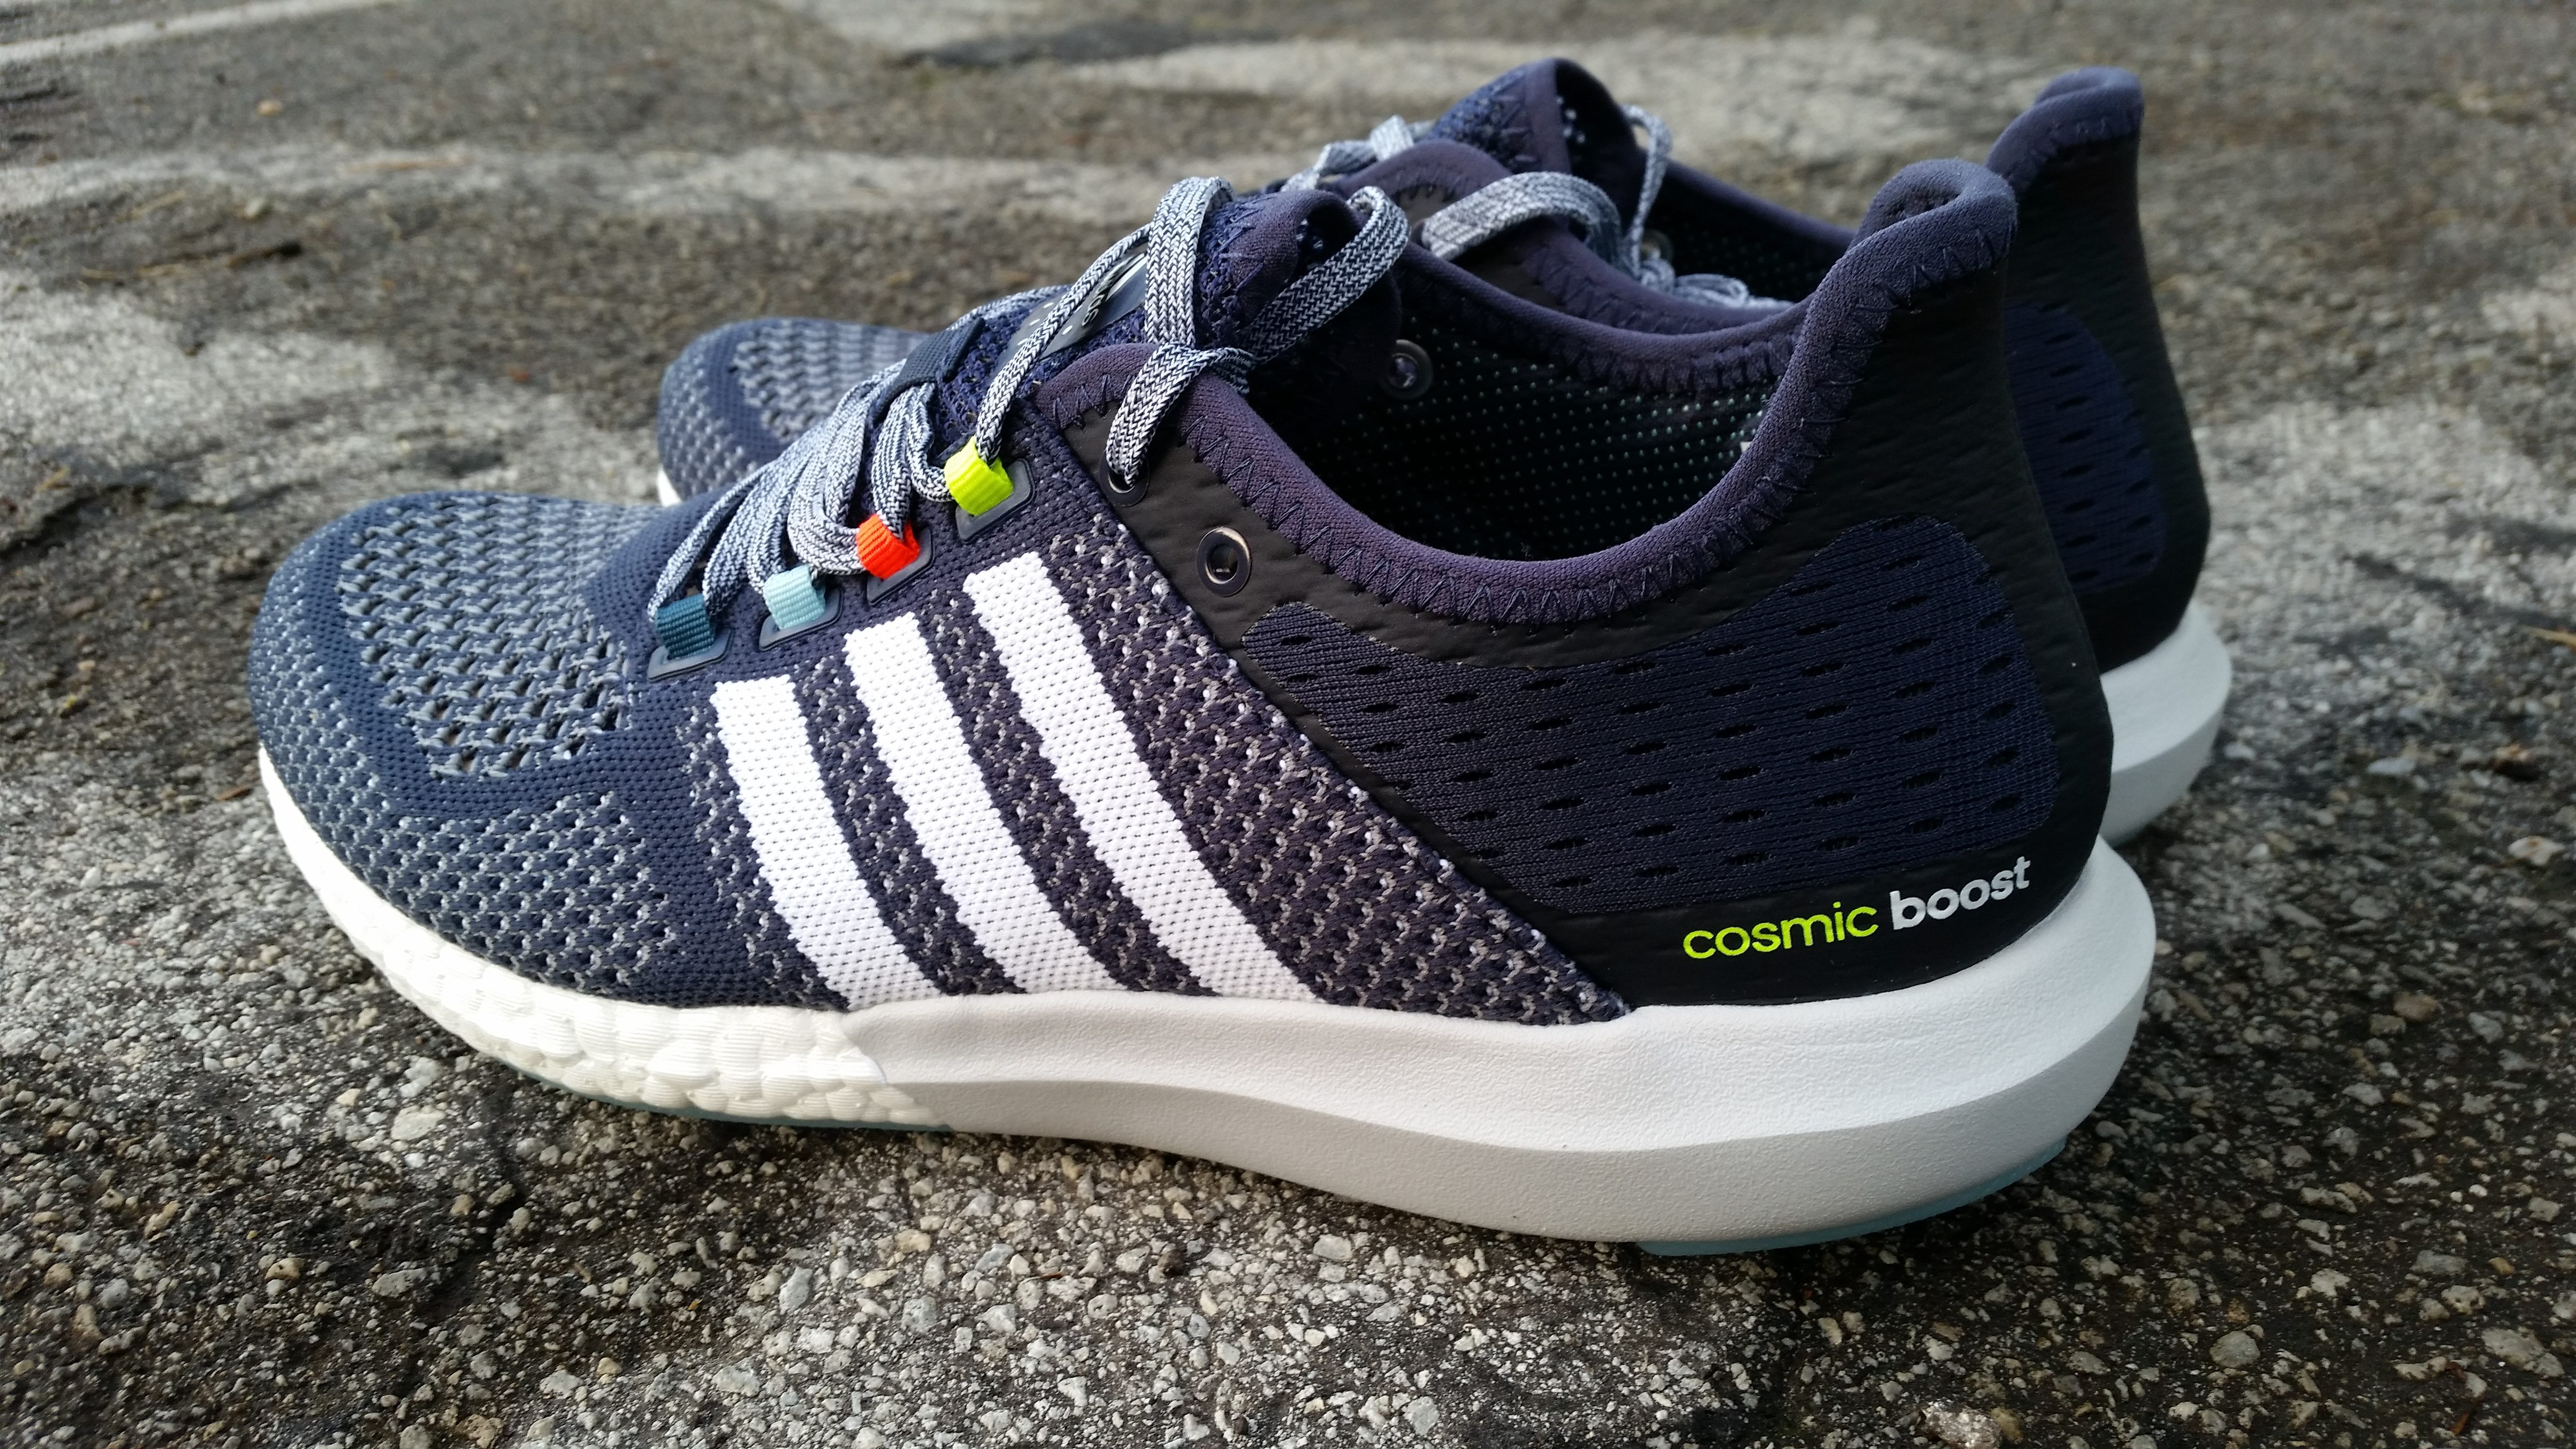 HearSee A/V | adidas ClimaChill Cosmic Boost - Hardwood and Hollywood